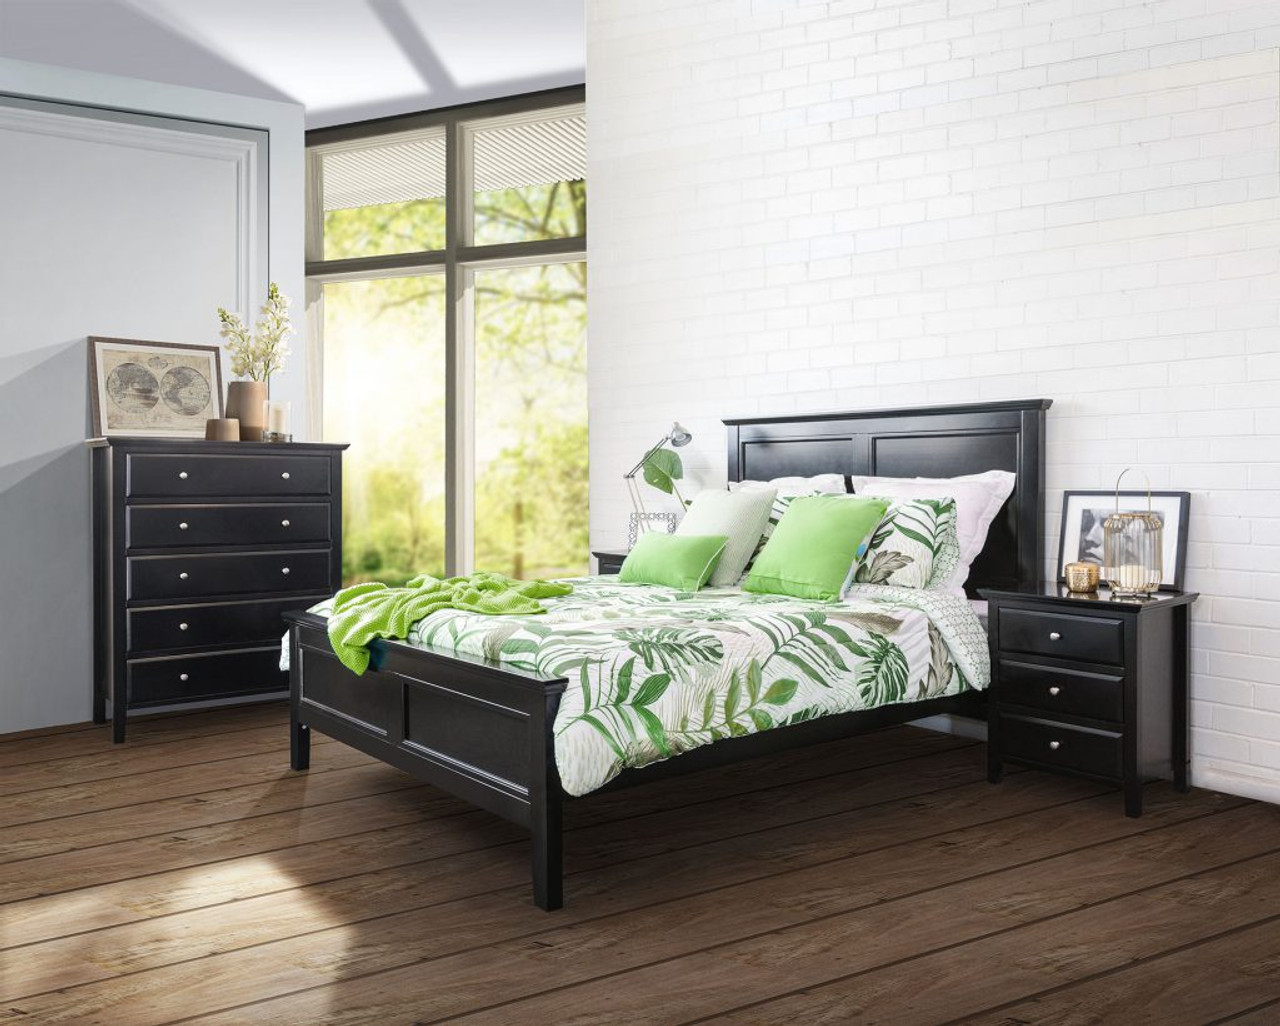 Ballina Double Or Queen 6 Piece The Lot Bedroom Suite Black My Furniture Store Furniture And Bedding Super Store Australia